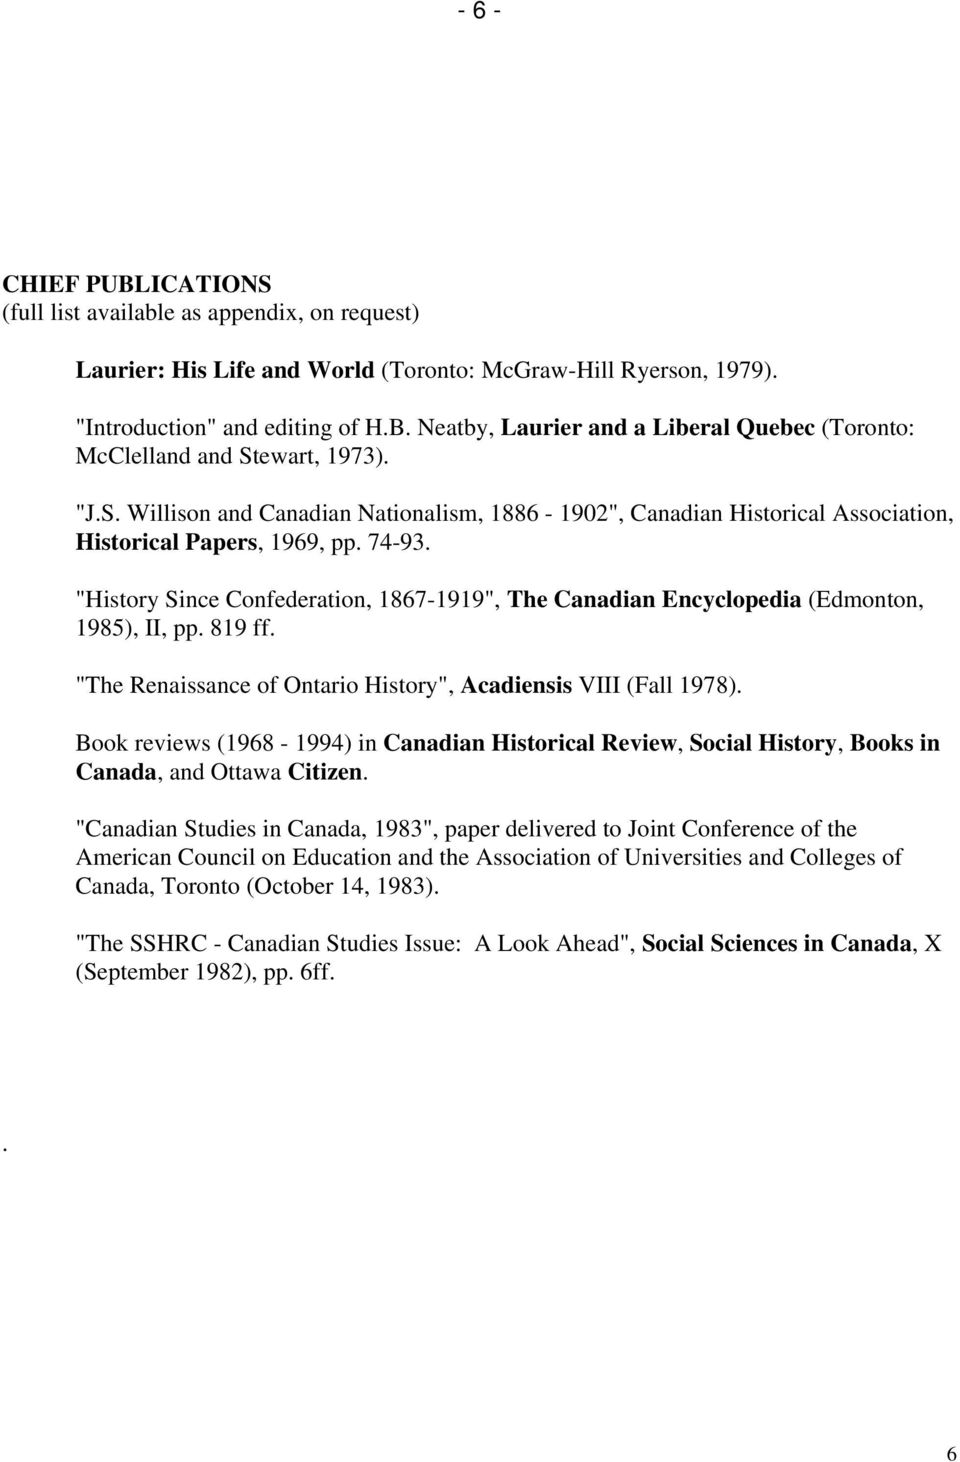 """History Since Confederation, 1867-1919"", The Canadian Encyclopedia (Edmonton, 1985), II, pp. 819 ff. ""The Renaissance of Ontario History"", Acadiensis VIII (Fall 1978)."